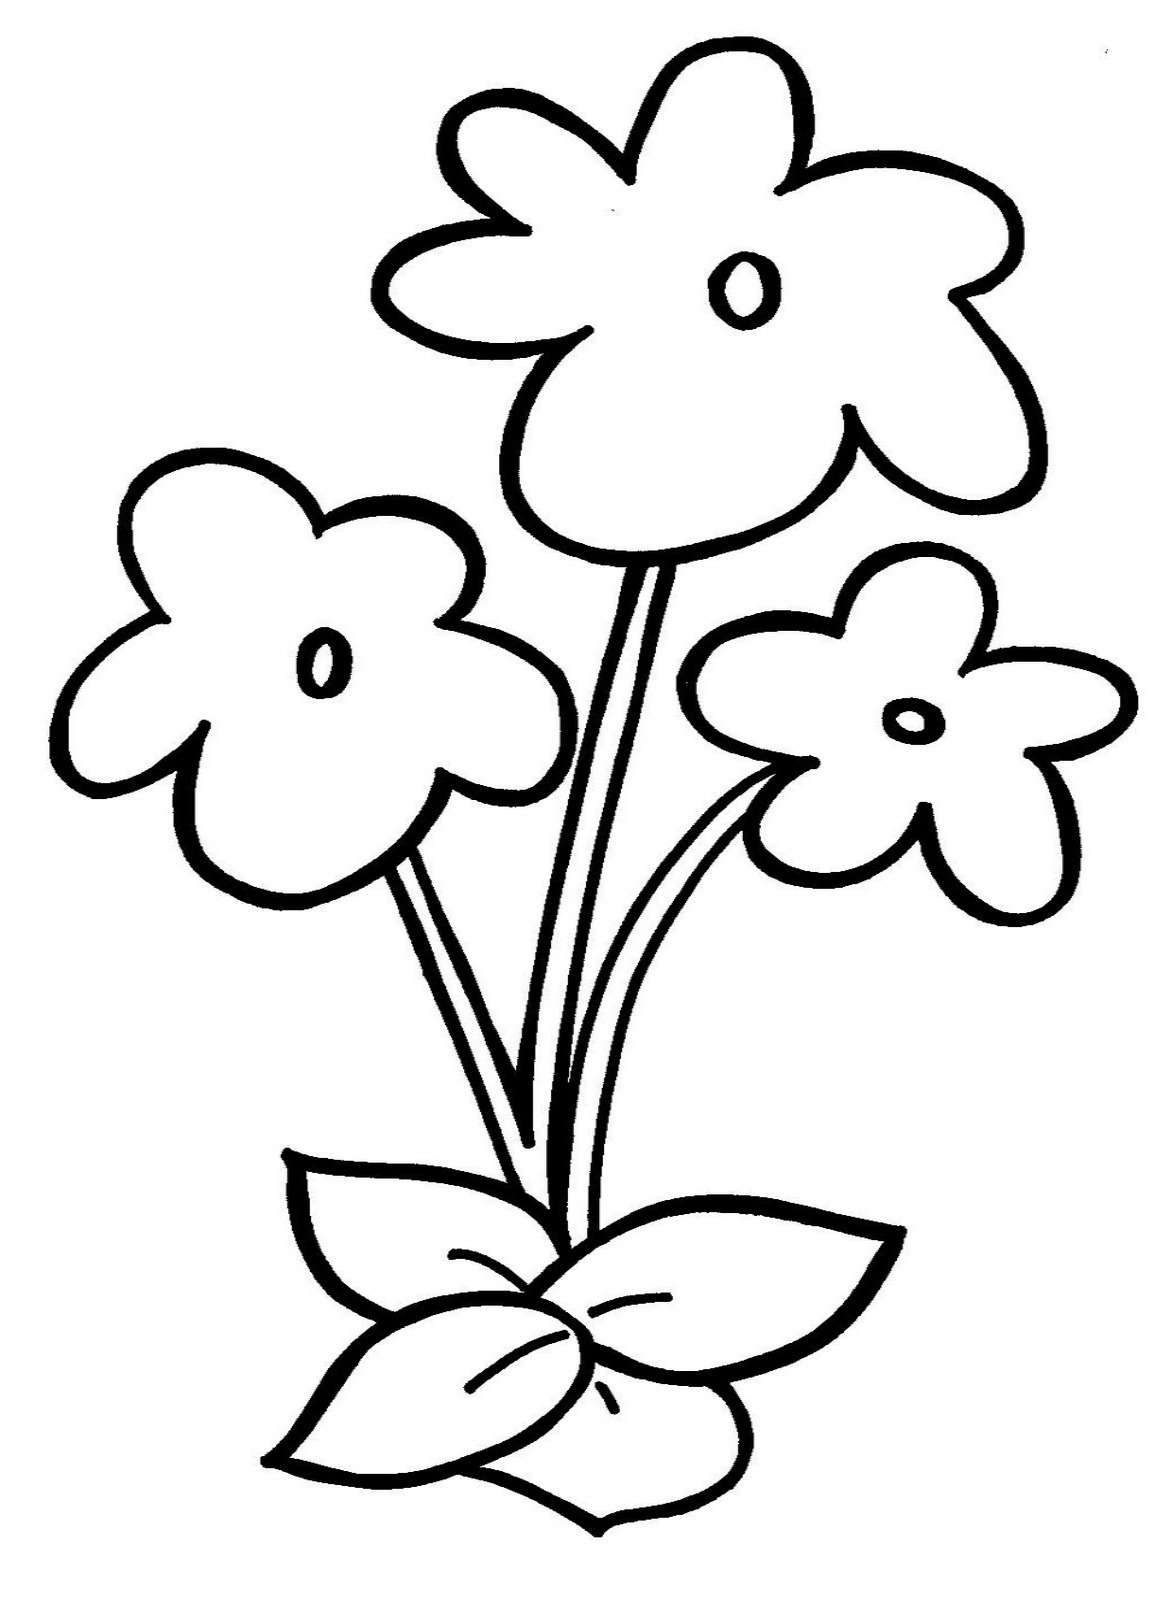 pictures of flowers to color free printables free printable flower coloring pages for kids of color pictures free to flowers printables